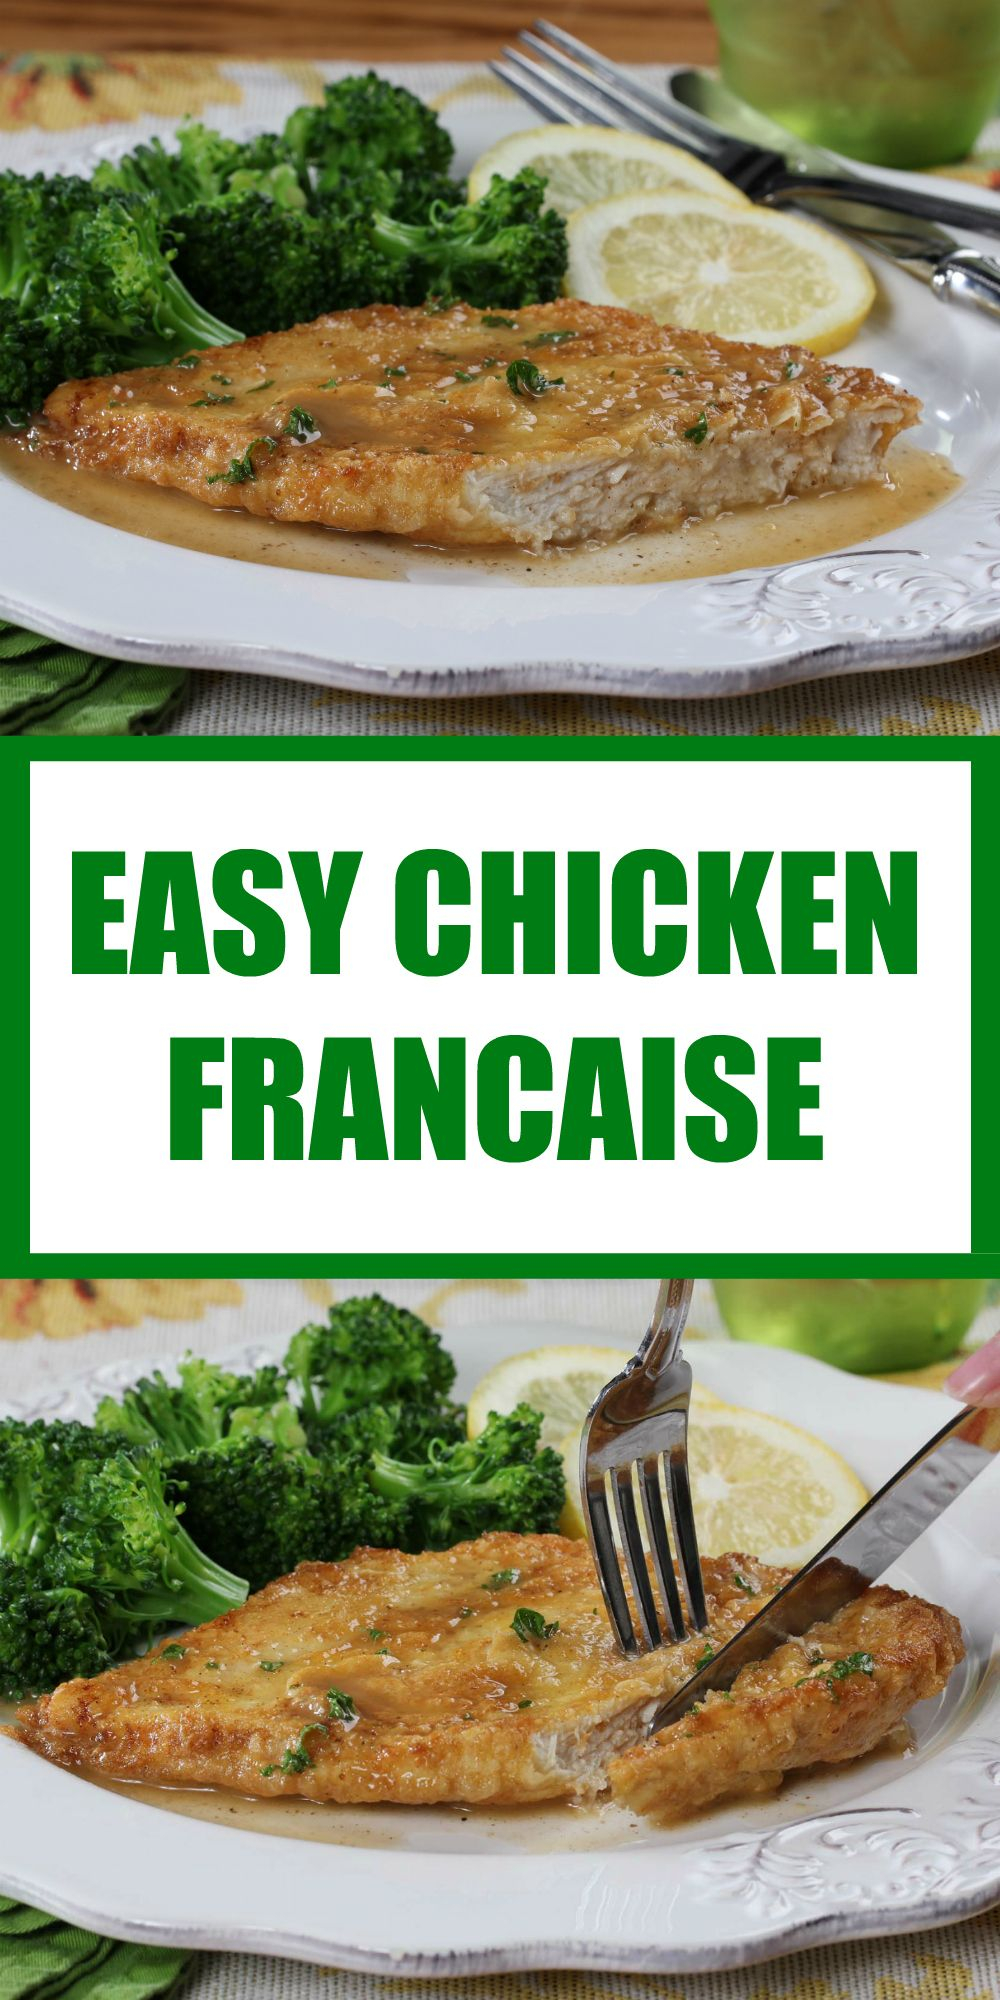 Easy Chicken Francaise images